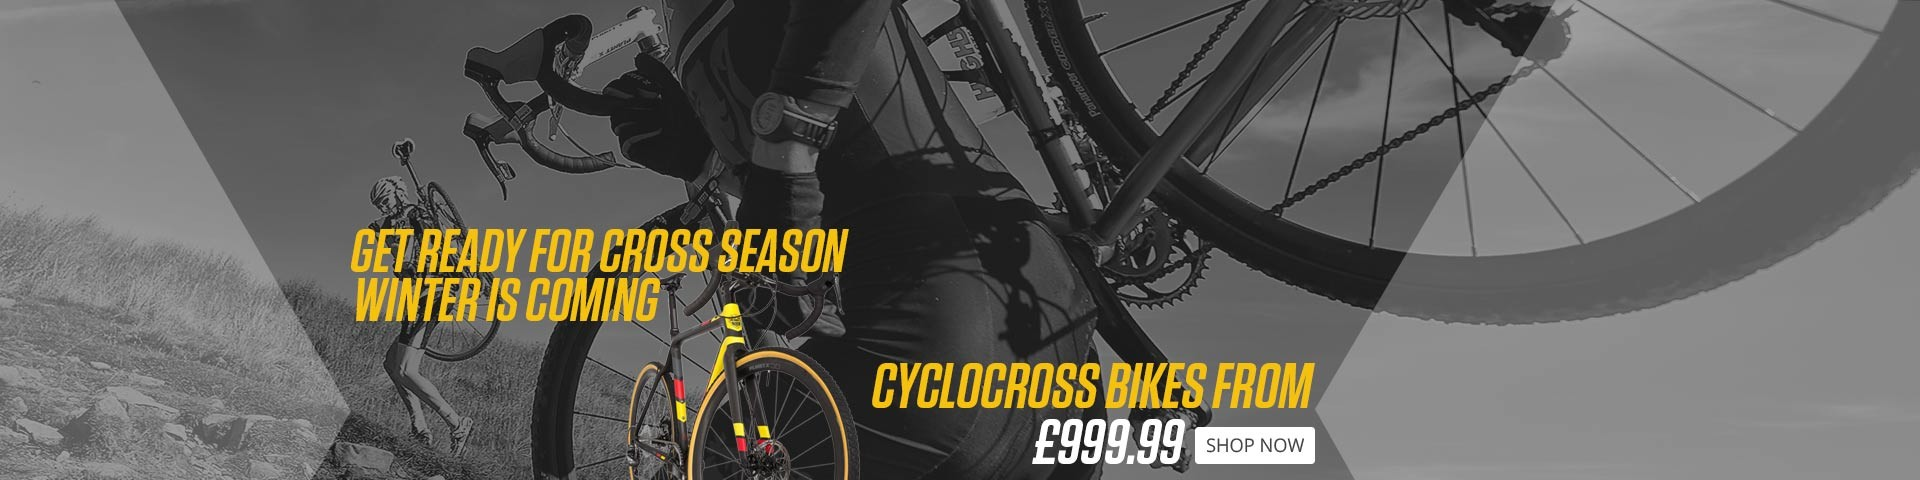 Get Ready for Cross Season - Winter is Coming